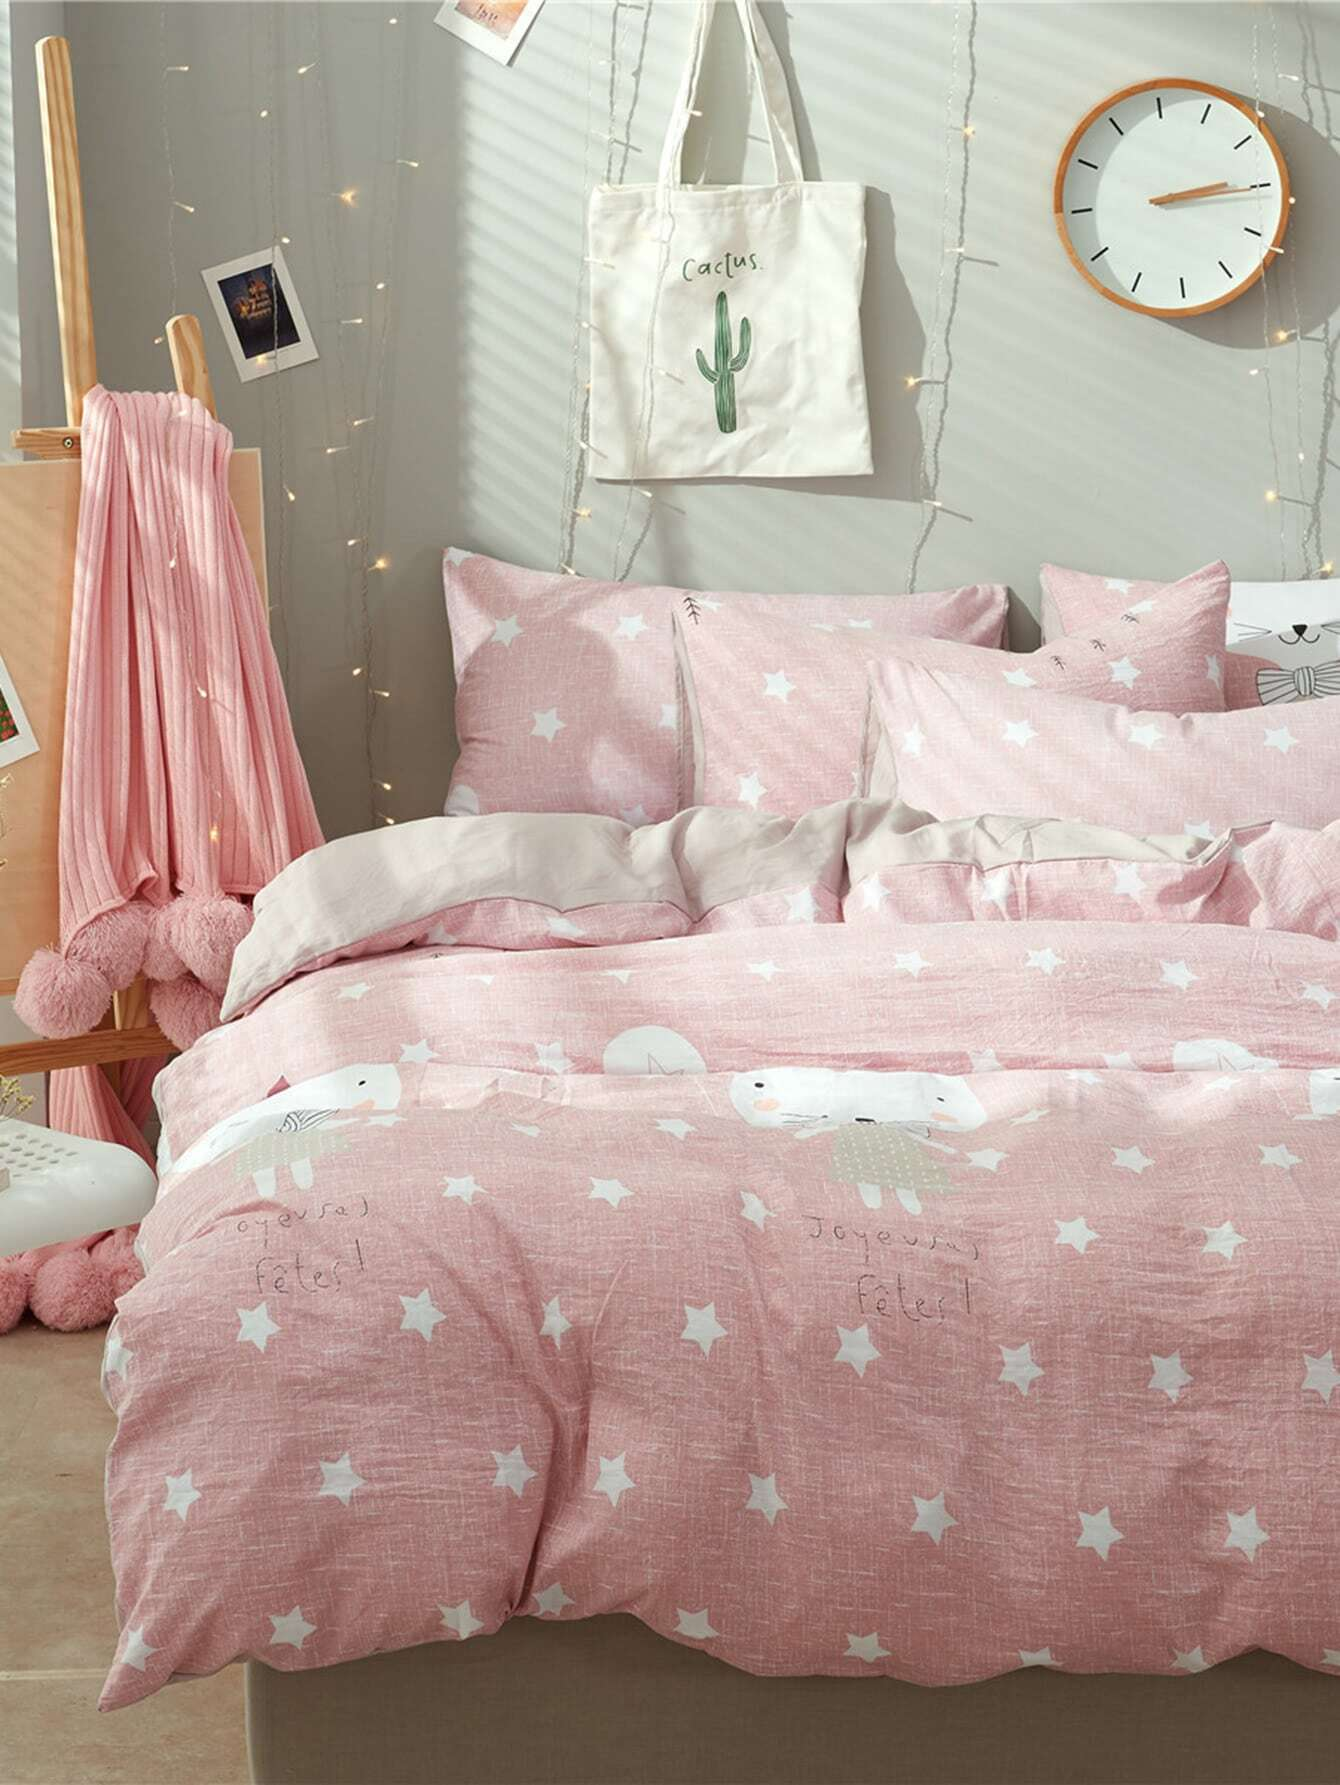 2.0m 4Pcs Cartoon And Star Print Duvet Cover Set